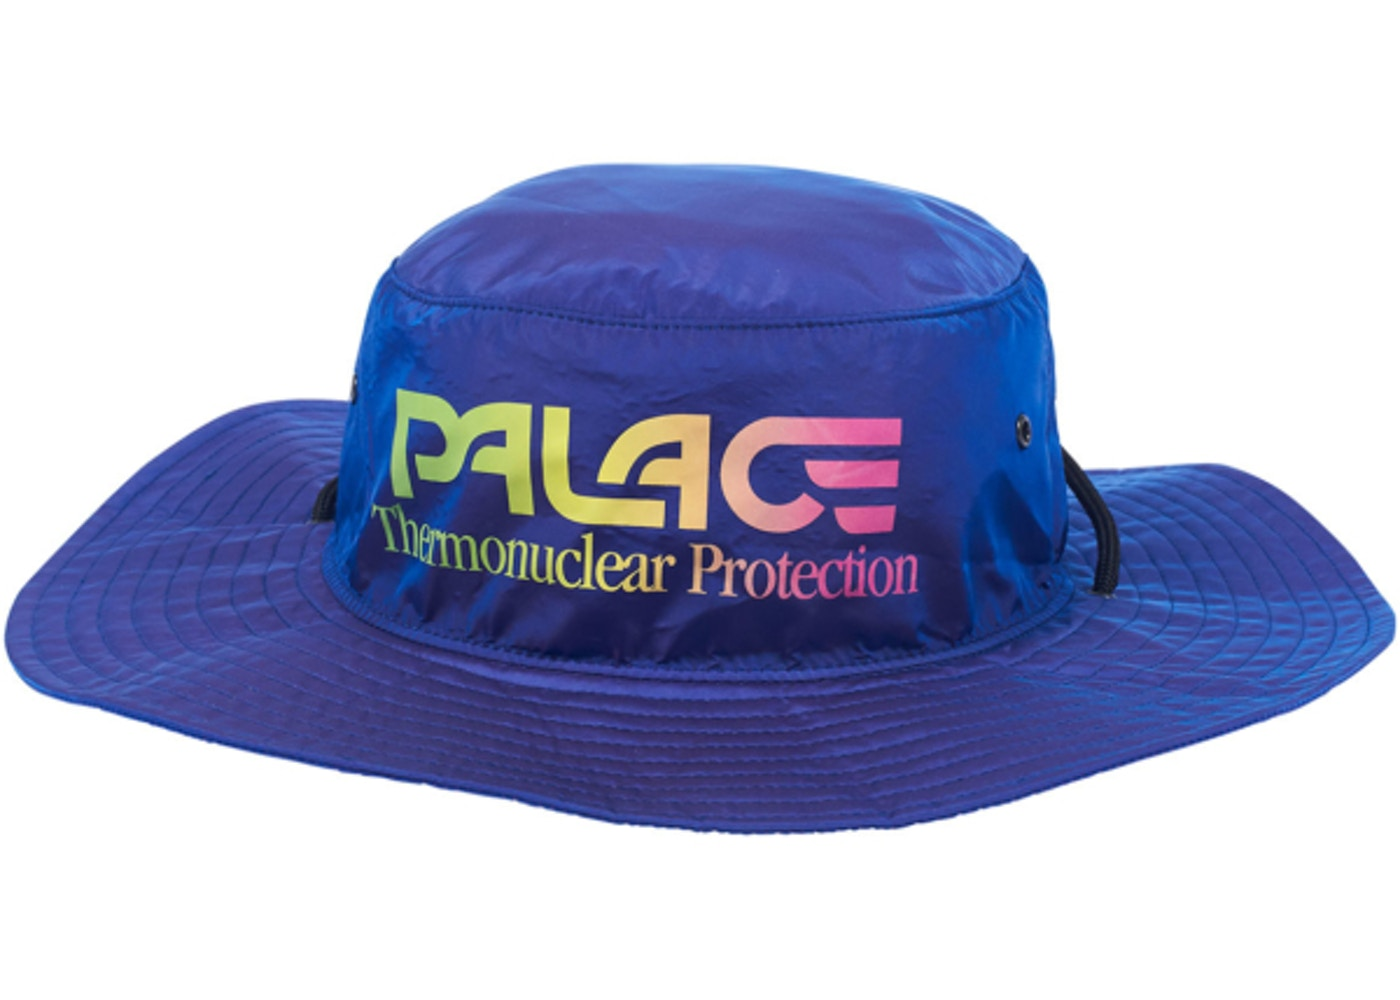 5db51286 Palace Oakley Thermo Hat Blue. Oakley Thermo